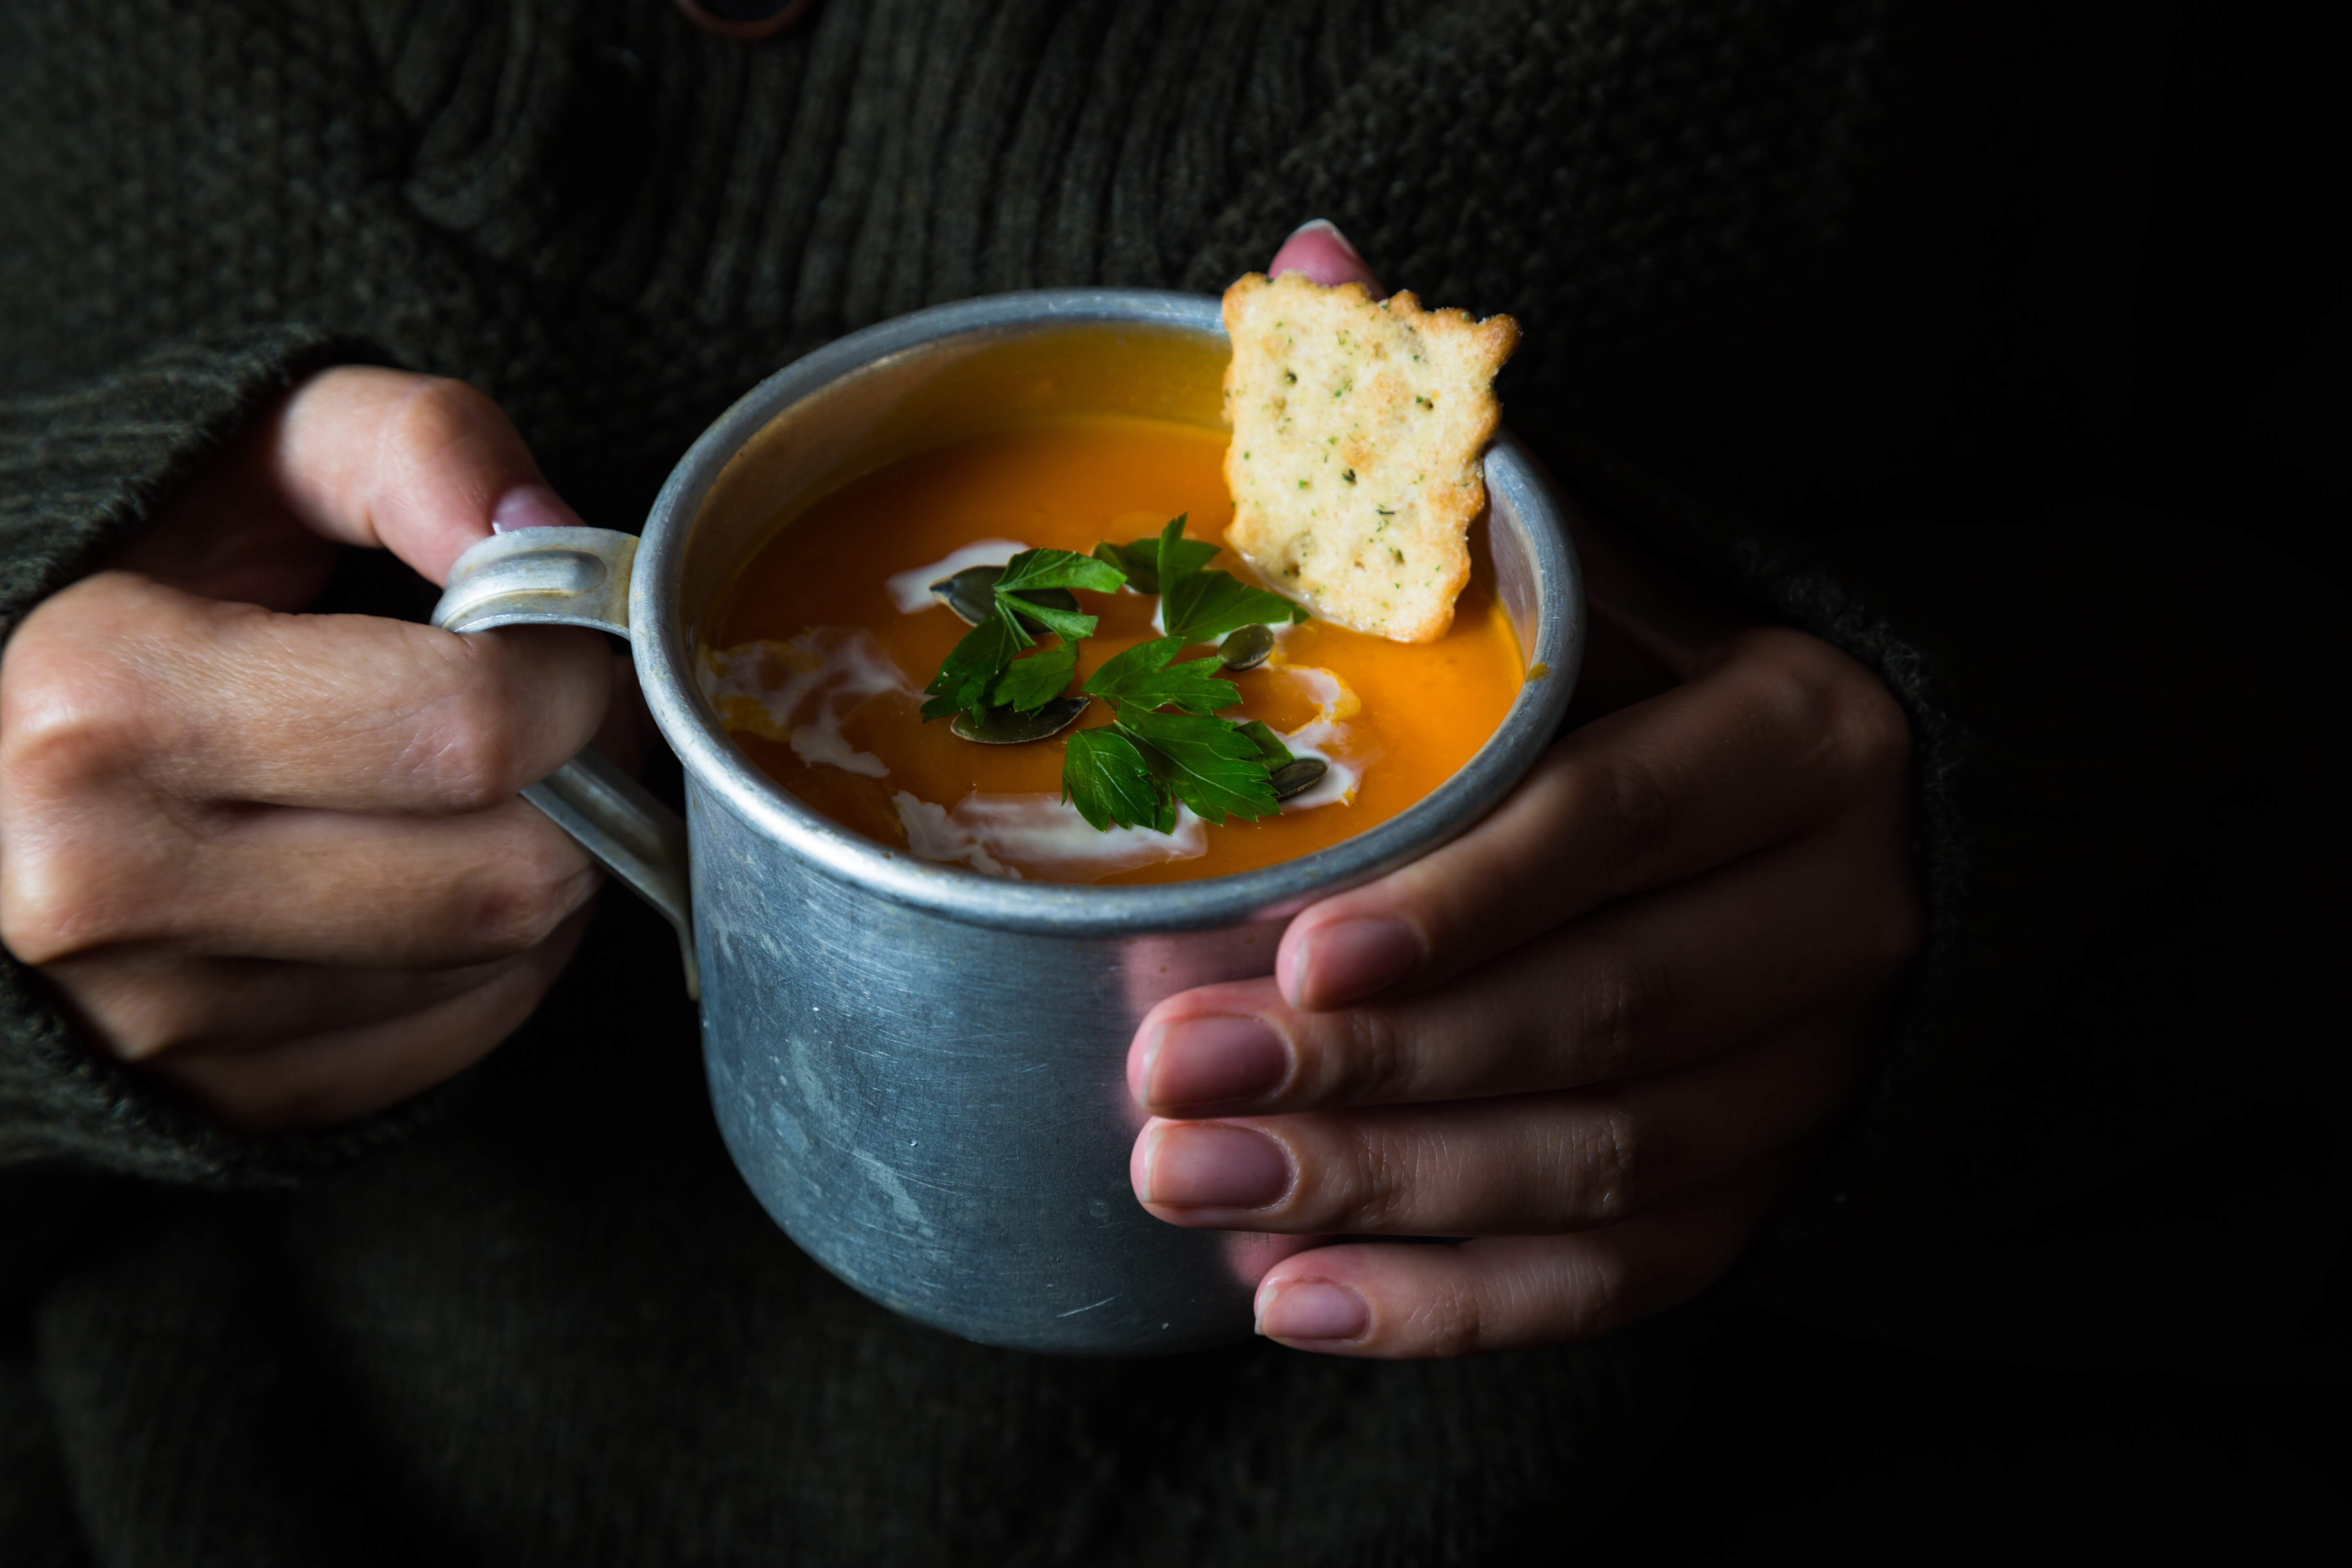 Wondrous Tips For Volunteering At A Soup Kitchen Kitchn Download Free Architecture Designs Xerocsunscenecom